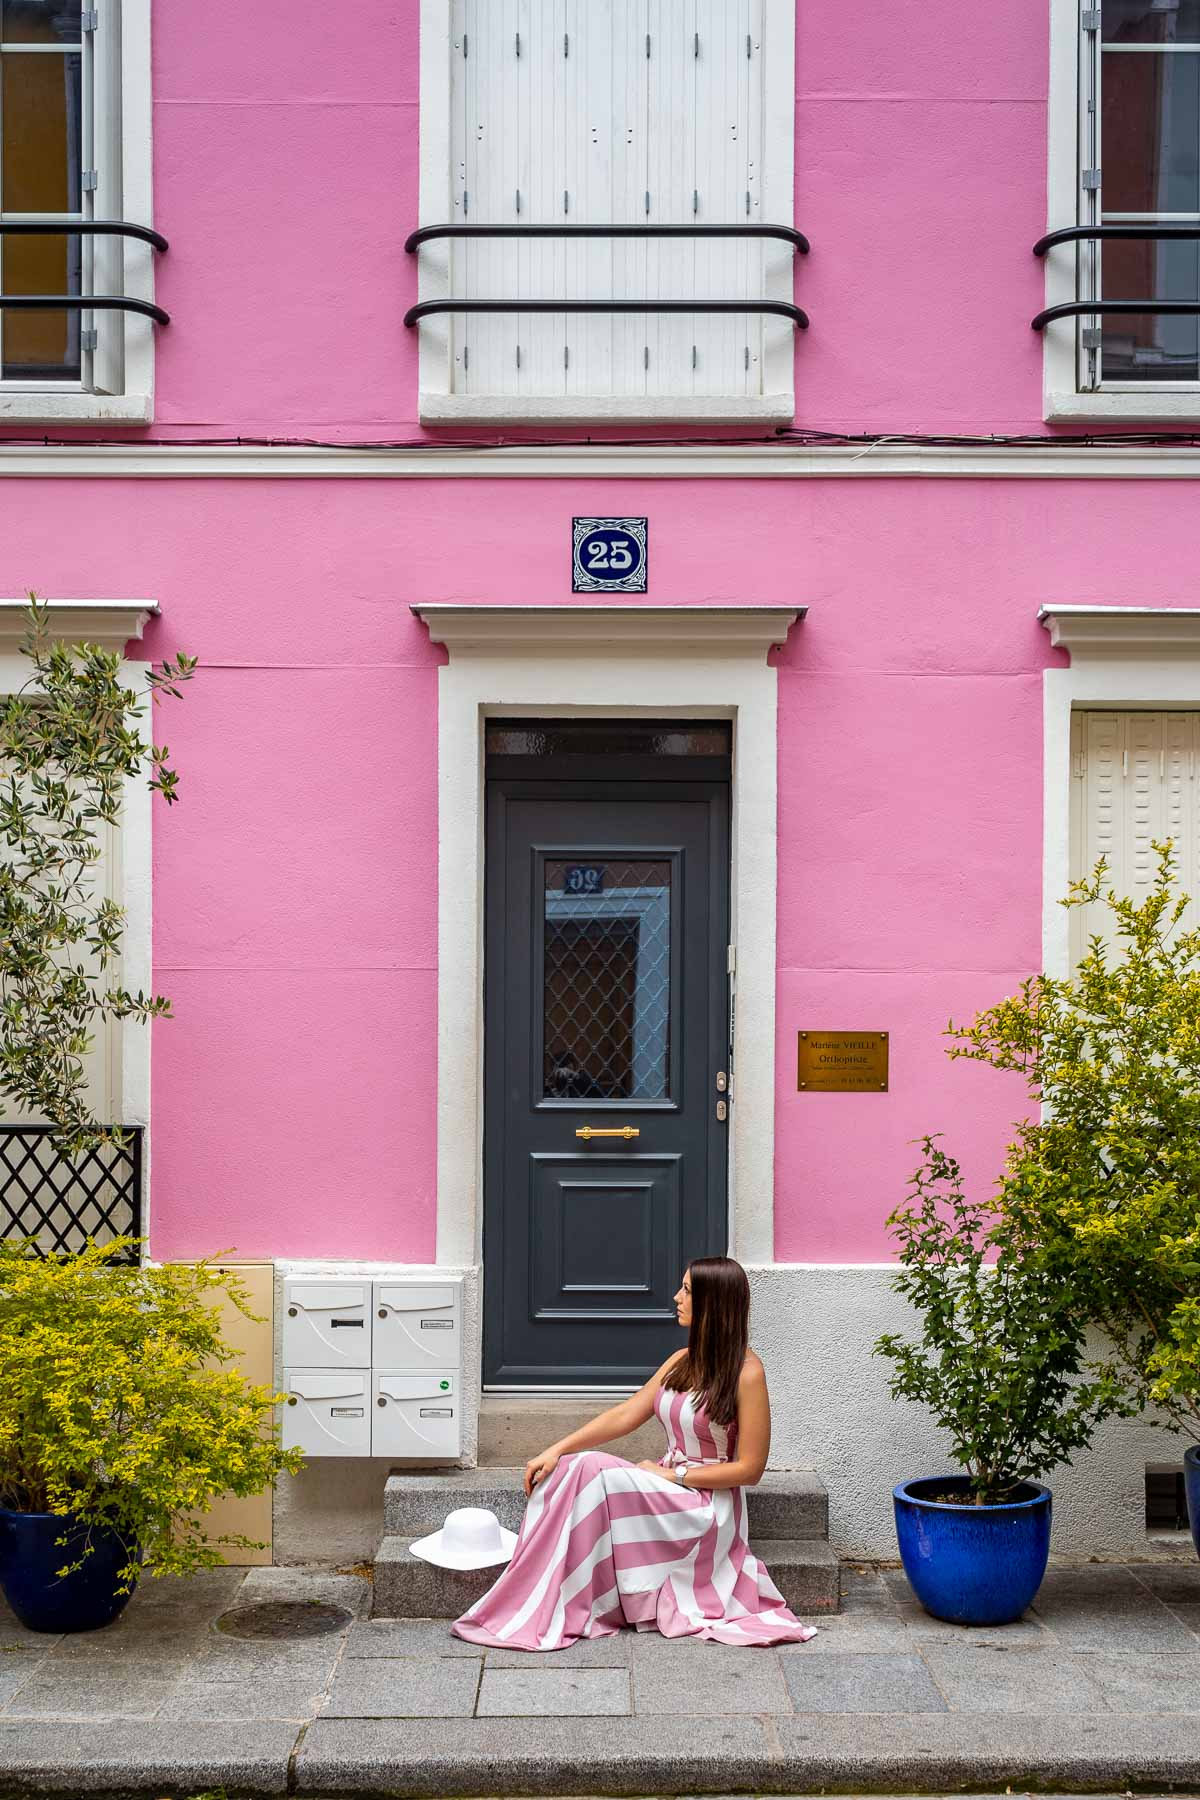 Girl in a pink-white dress sitting in front of a pink house at Rue Crémieux in Paris, France